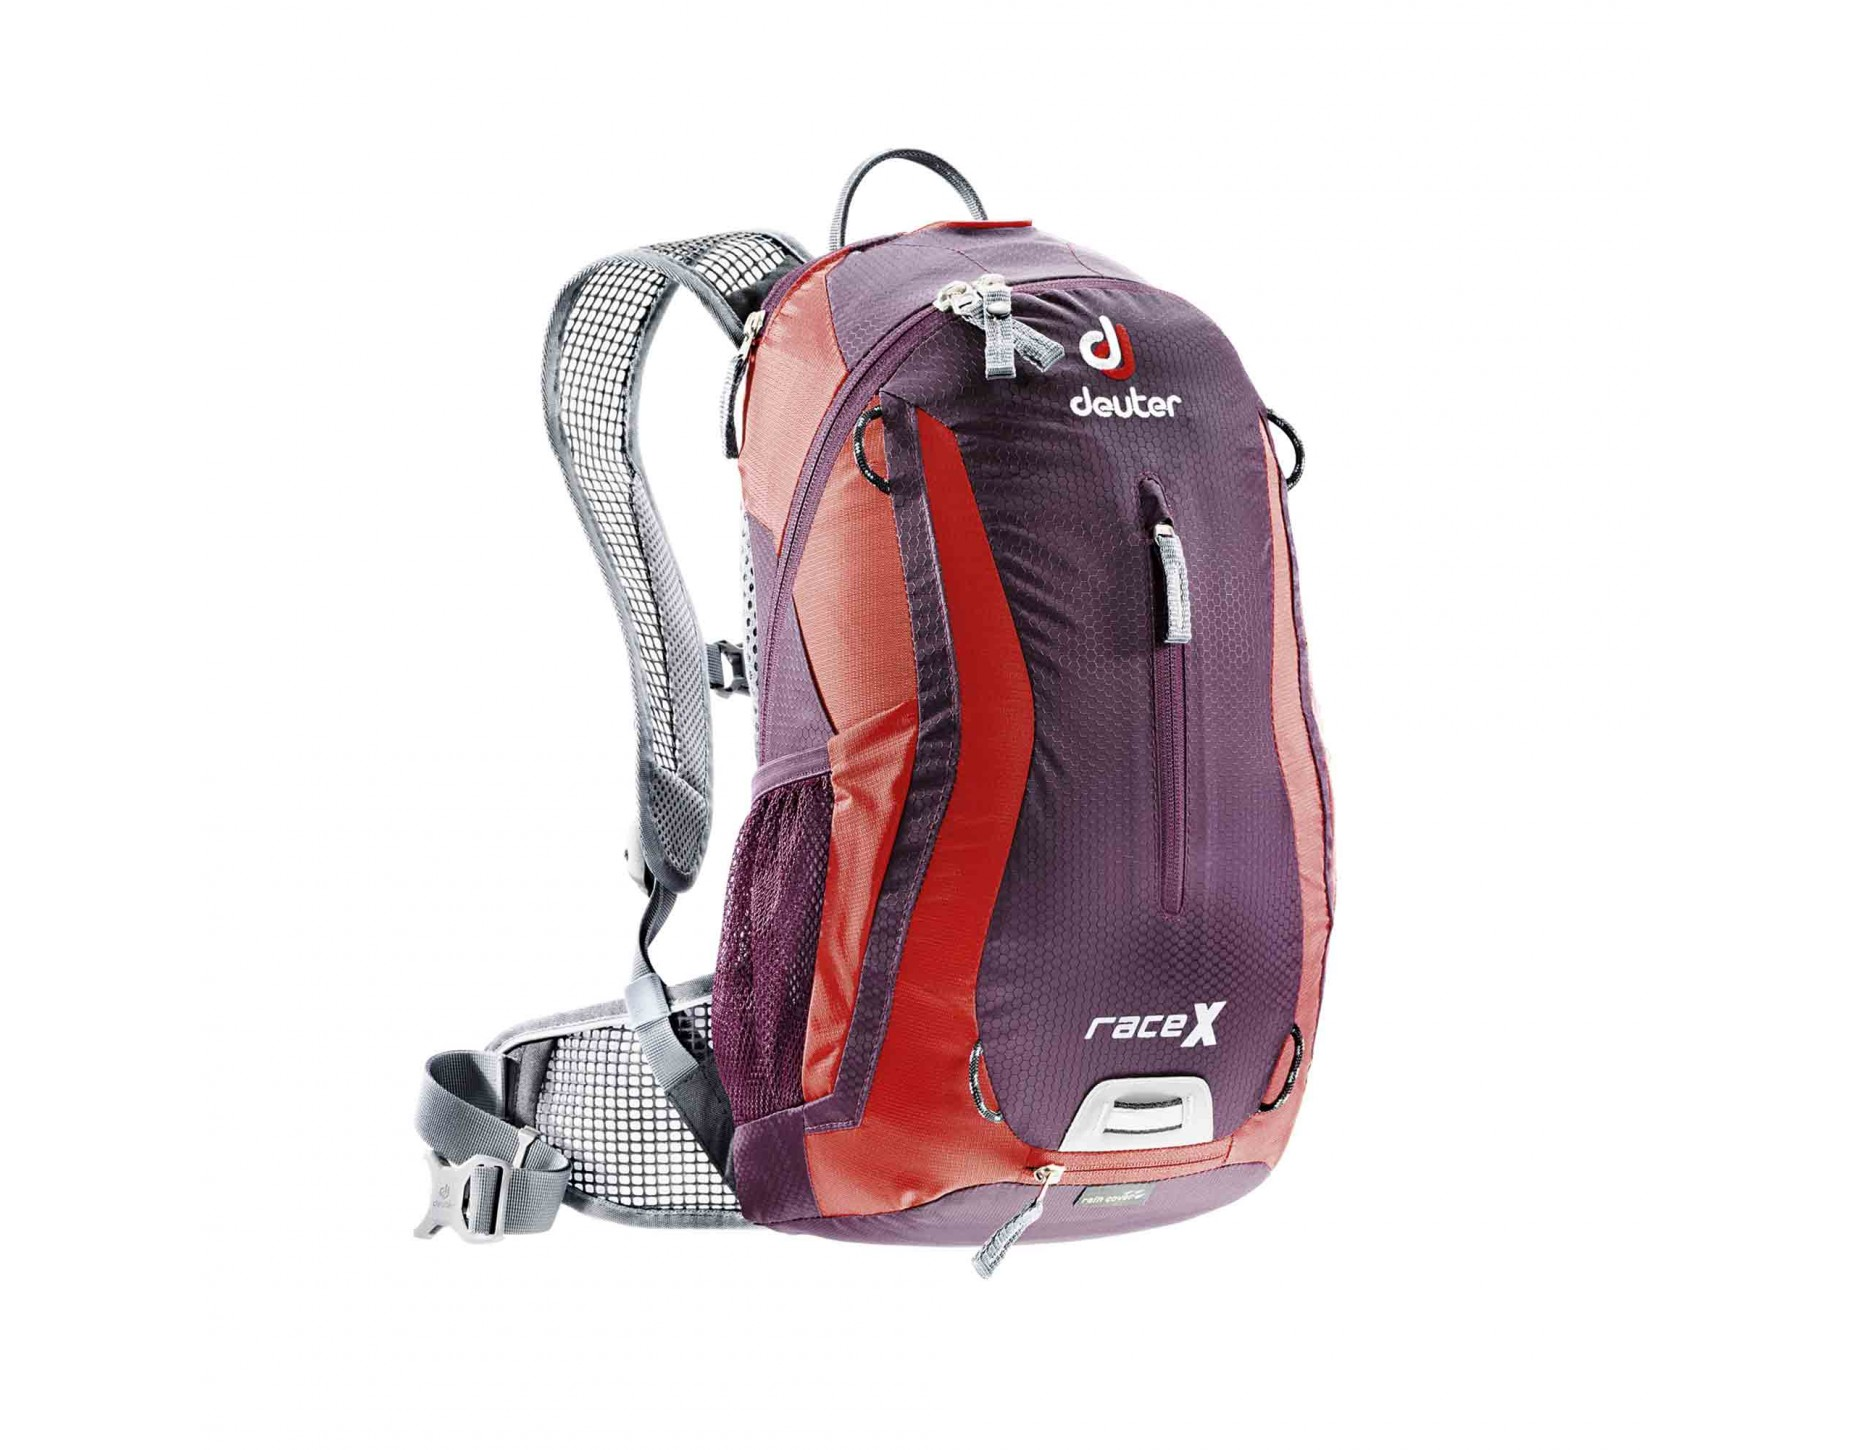 deuter race x backpack offers at the cycling shop rose bikes. Black Bedroom Furniture Sets. Home Design Ideas